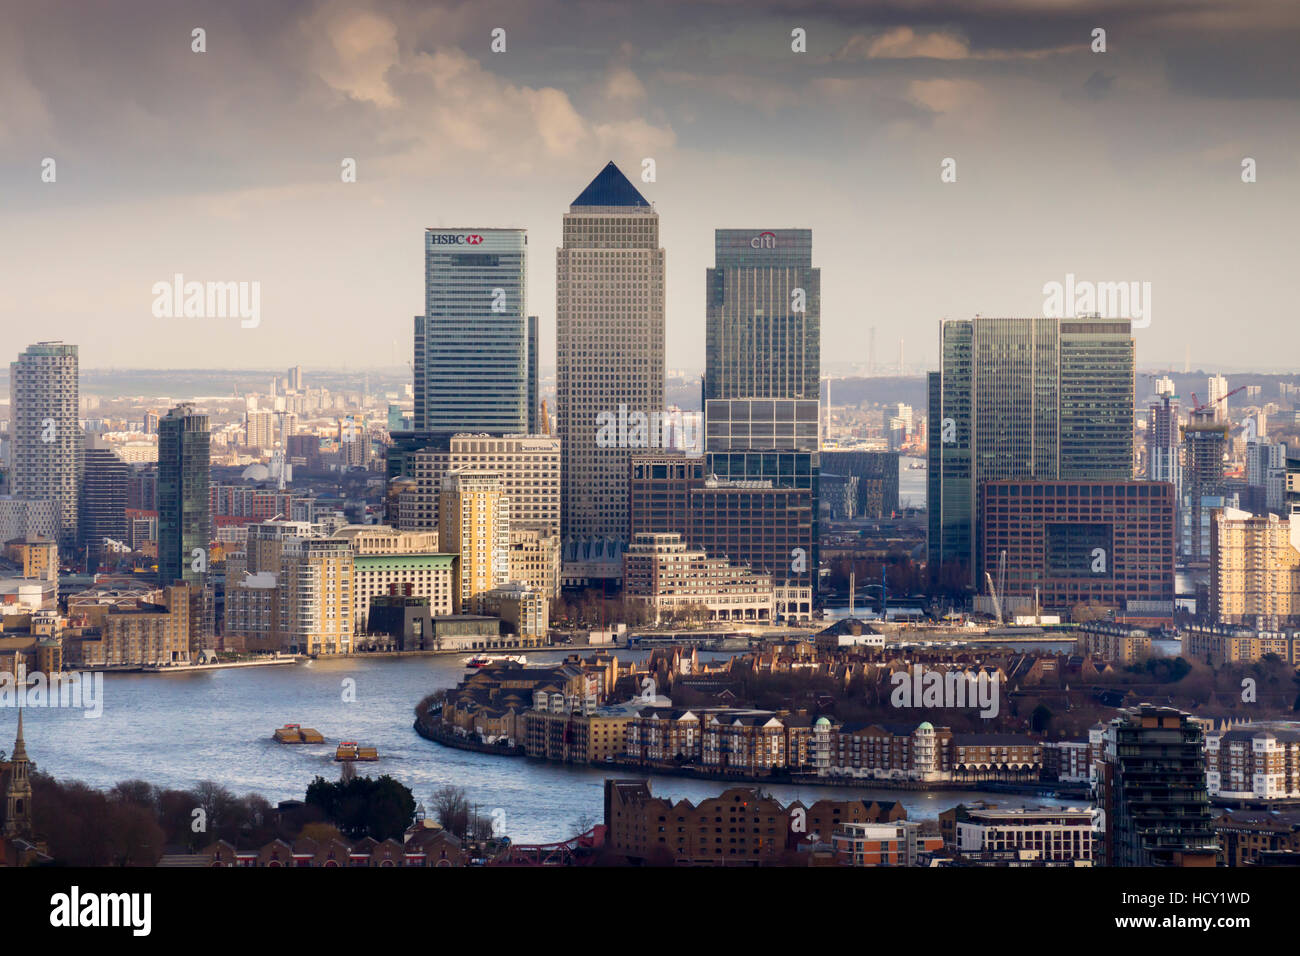 Moody view of Canary Wharf, Docklands, from above, London, UK - Stock Image